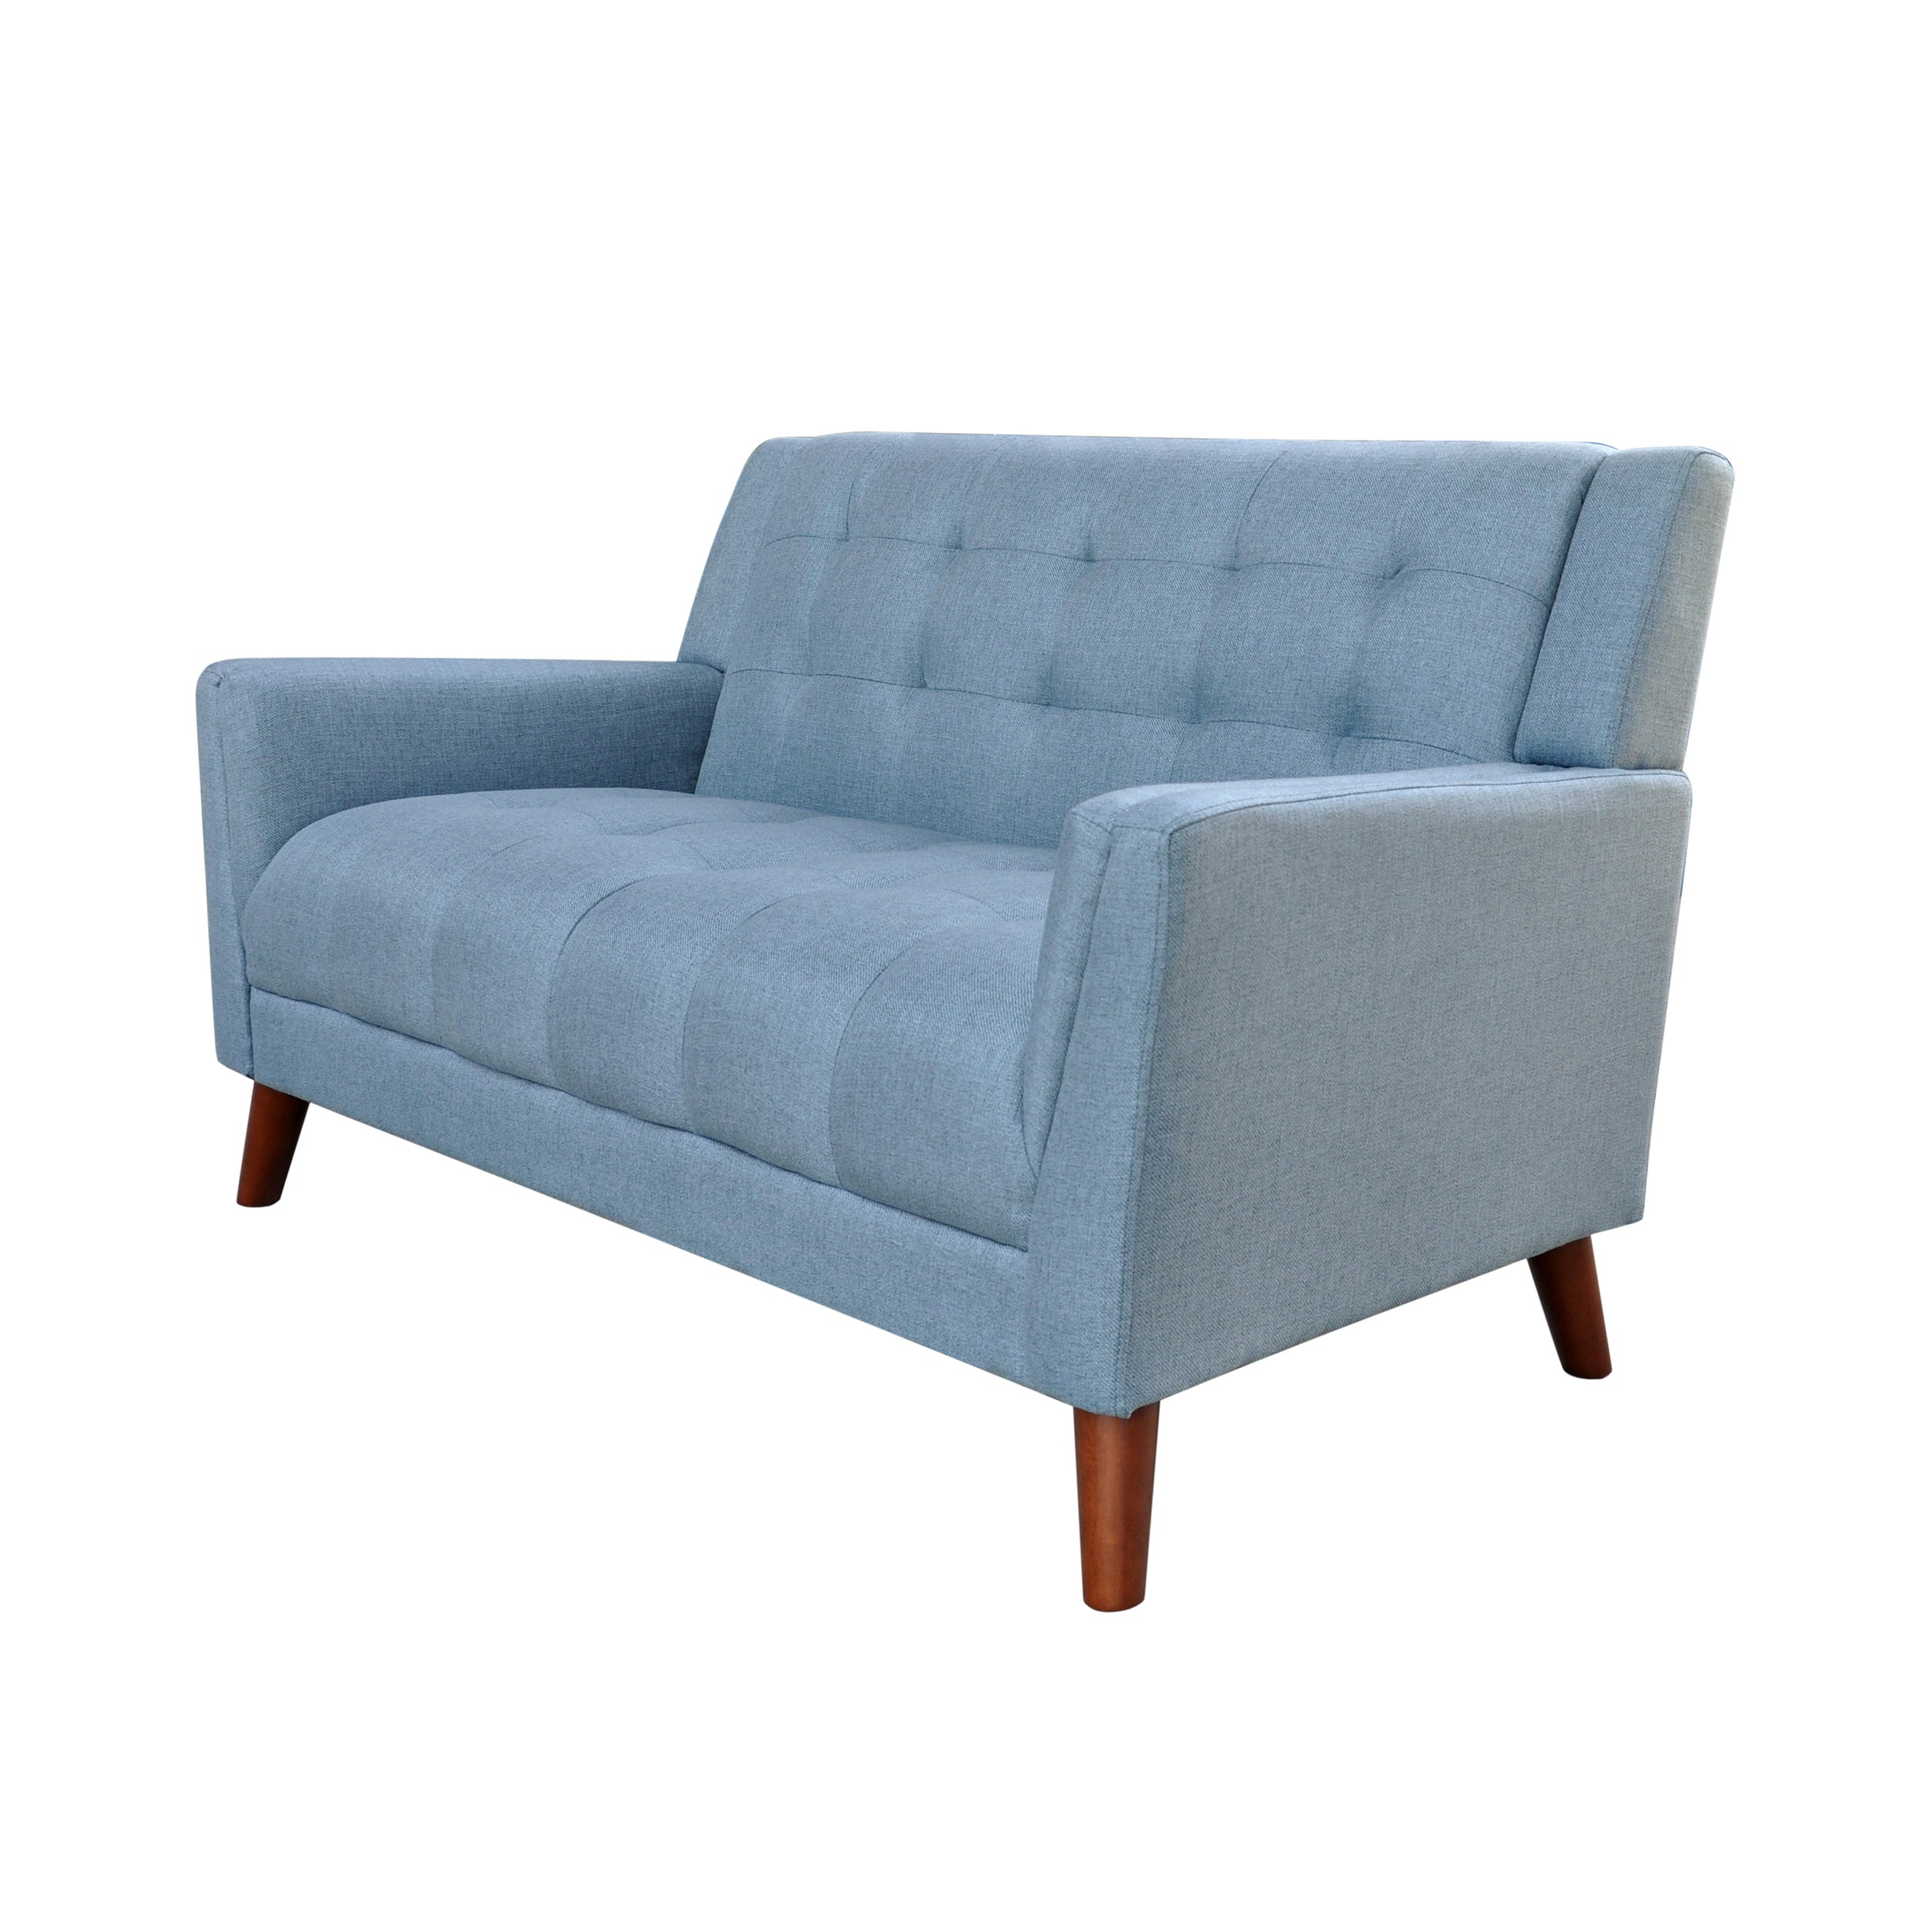 Anvith Mid Century Modern Fabric Loveseat Blue